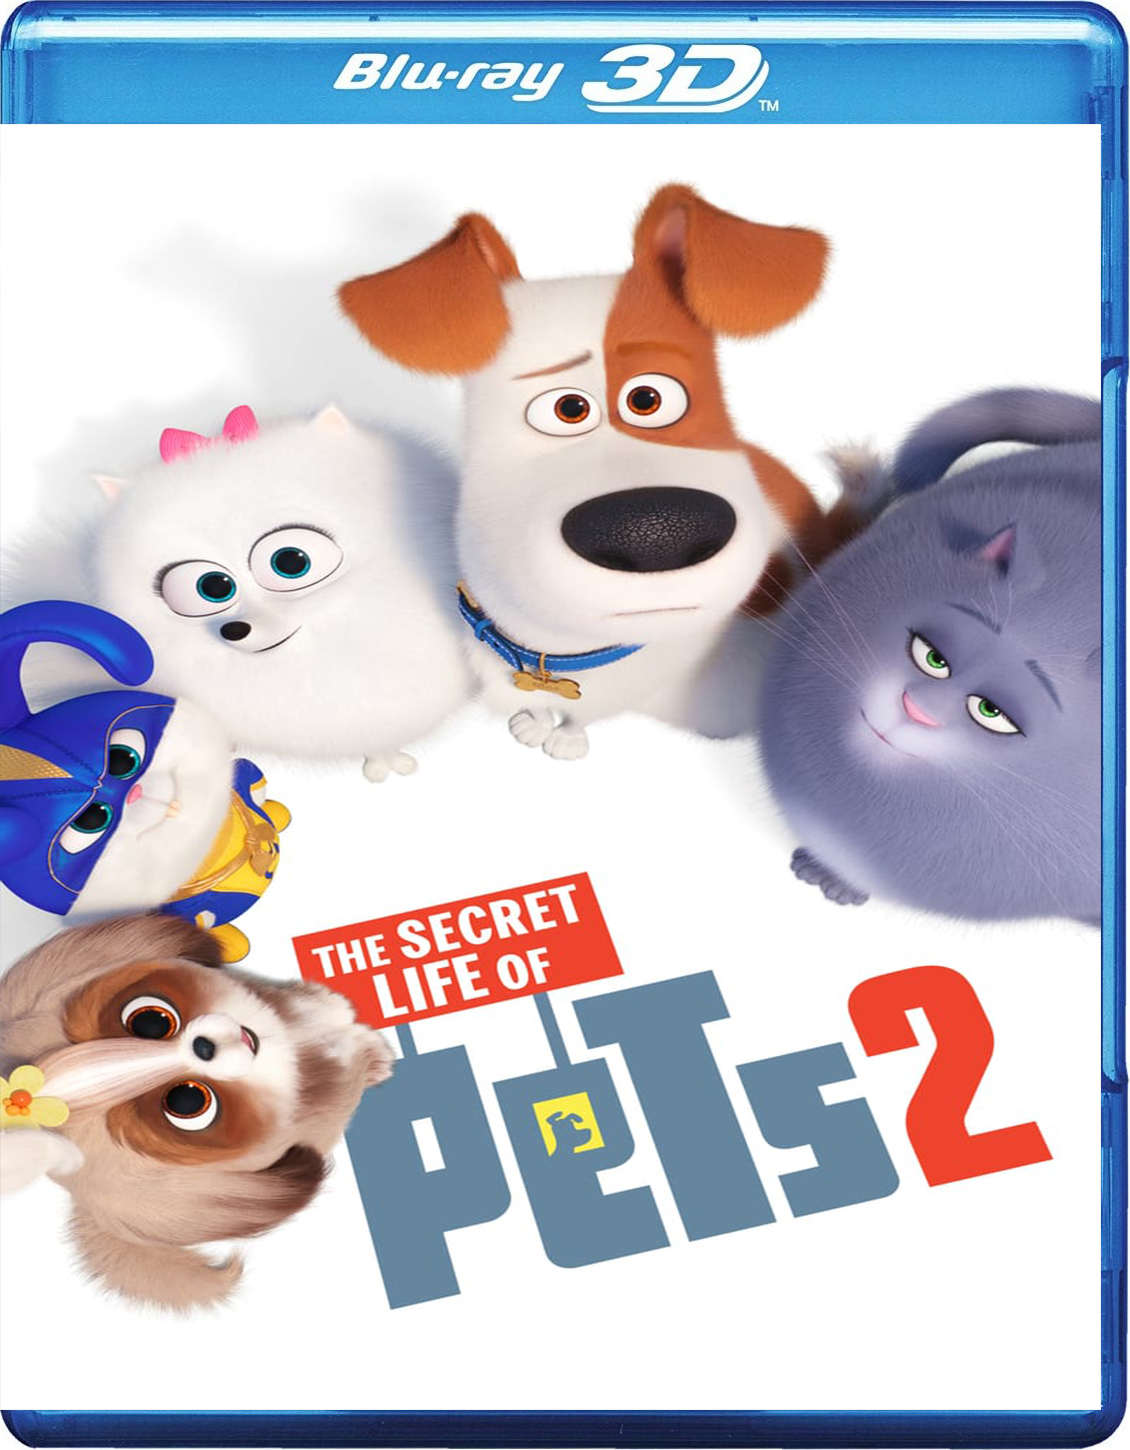 The Secret Life of Pets 2 [2019] [BD50] [Latino] [3D]